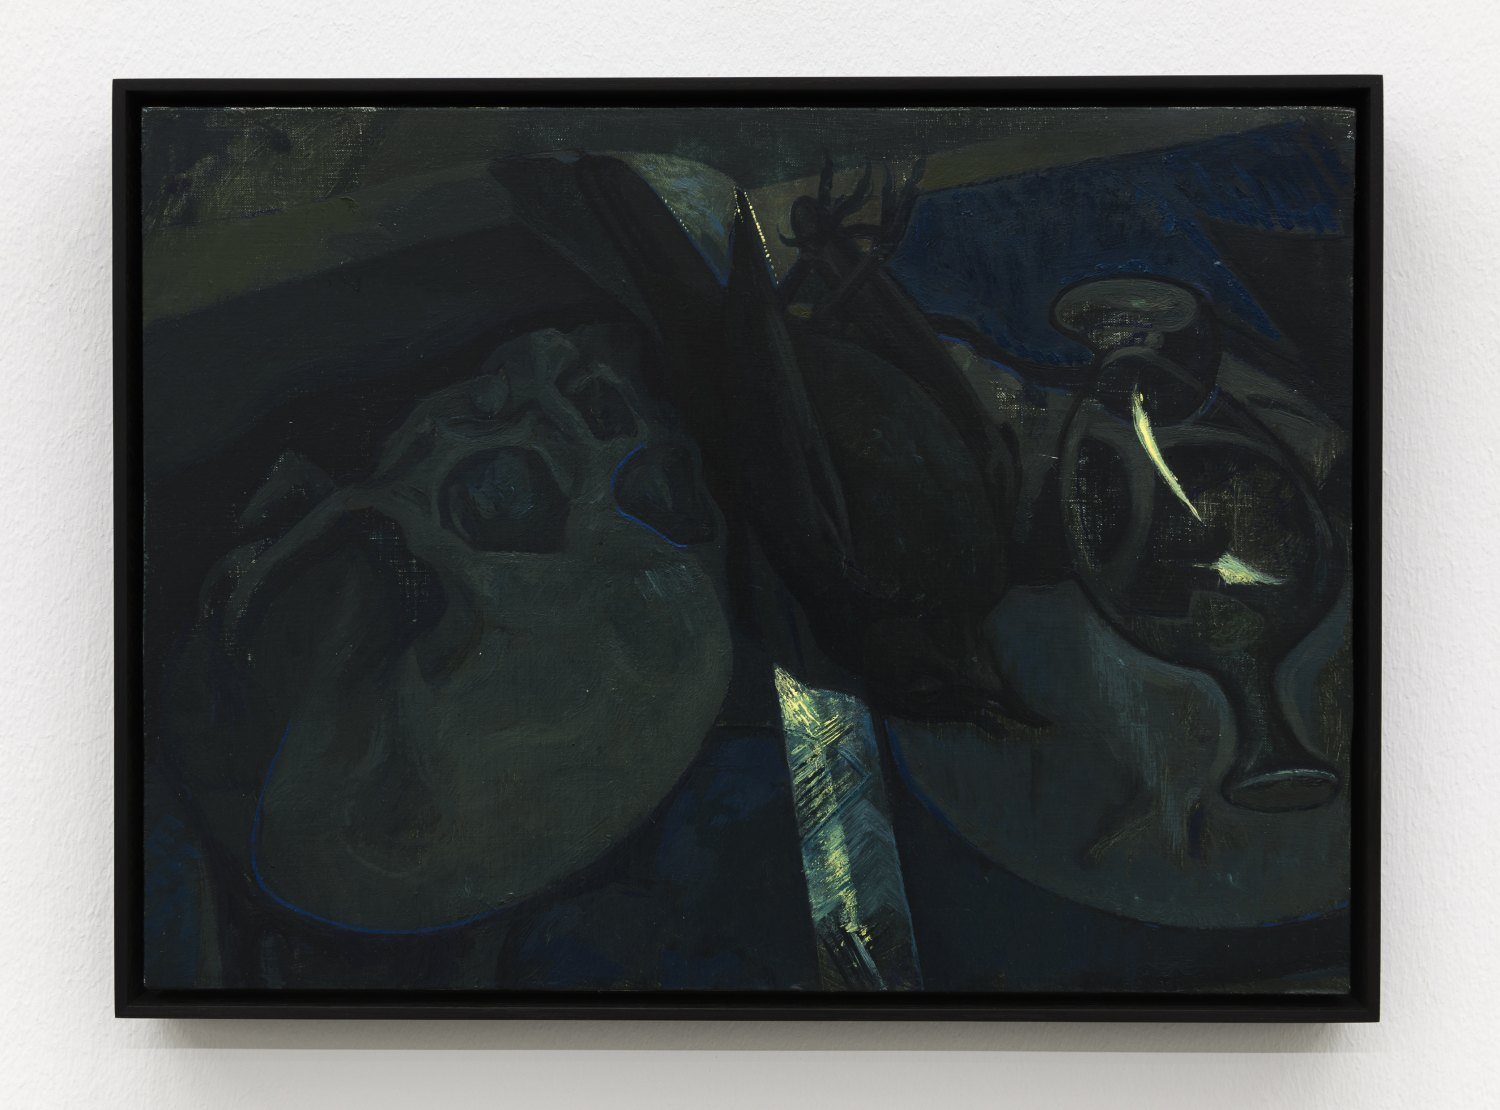 Victor Man  Two Skulls After El Greco and Blackbird, 2017 Oil on canvas mounted on wood 30 x 41 cm